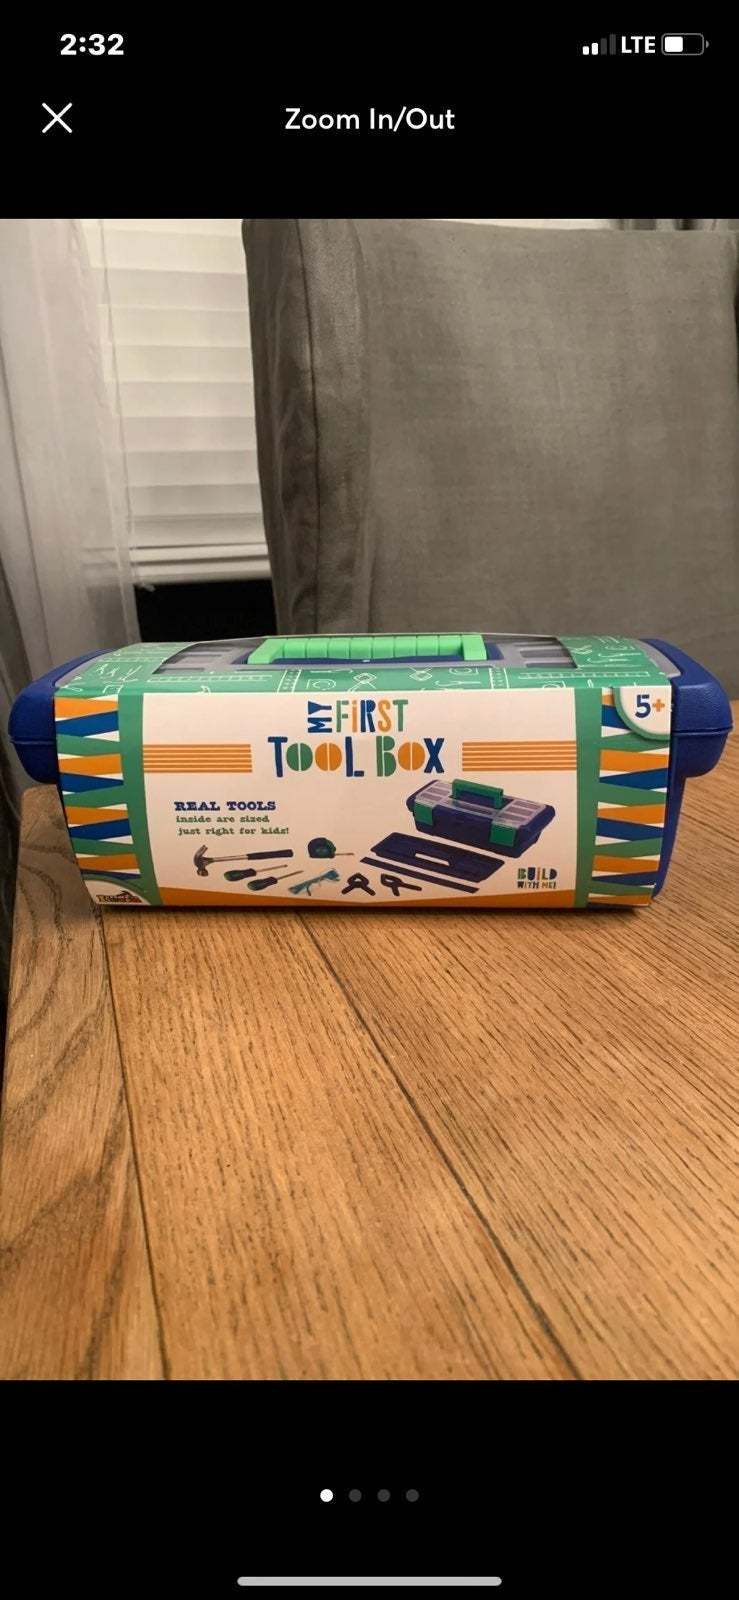 MY FIRST TOOL BOX SET FOR KIDS (NEW)